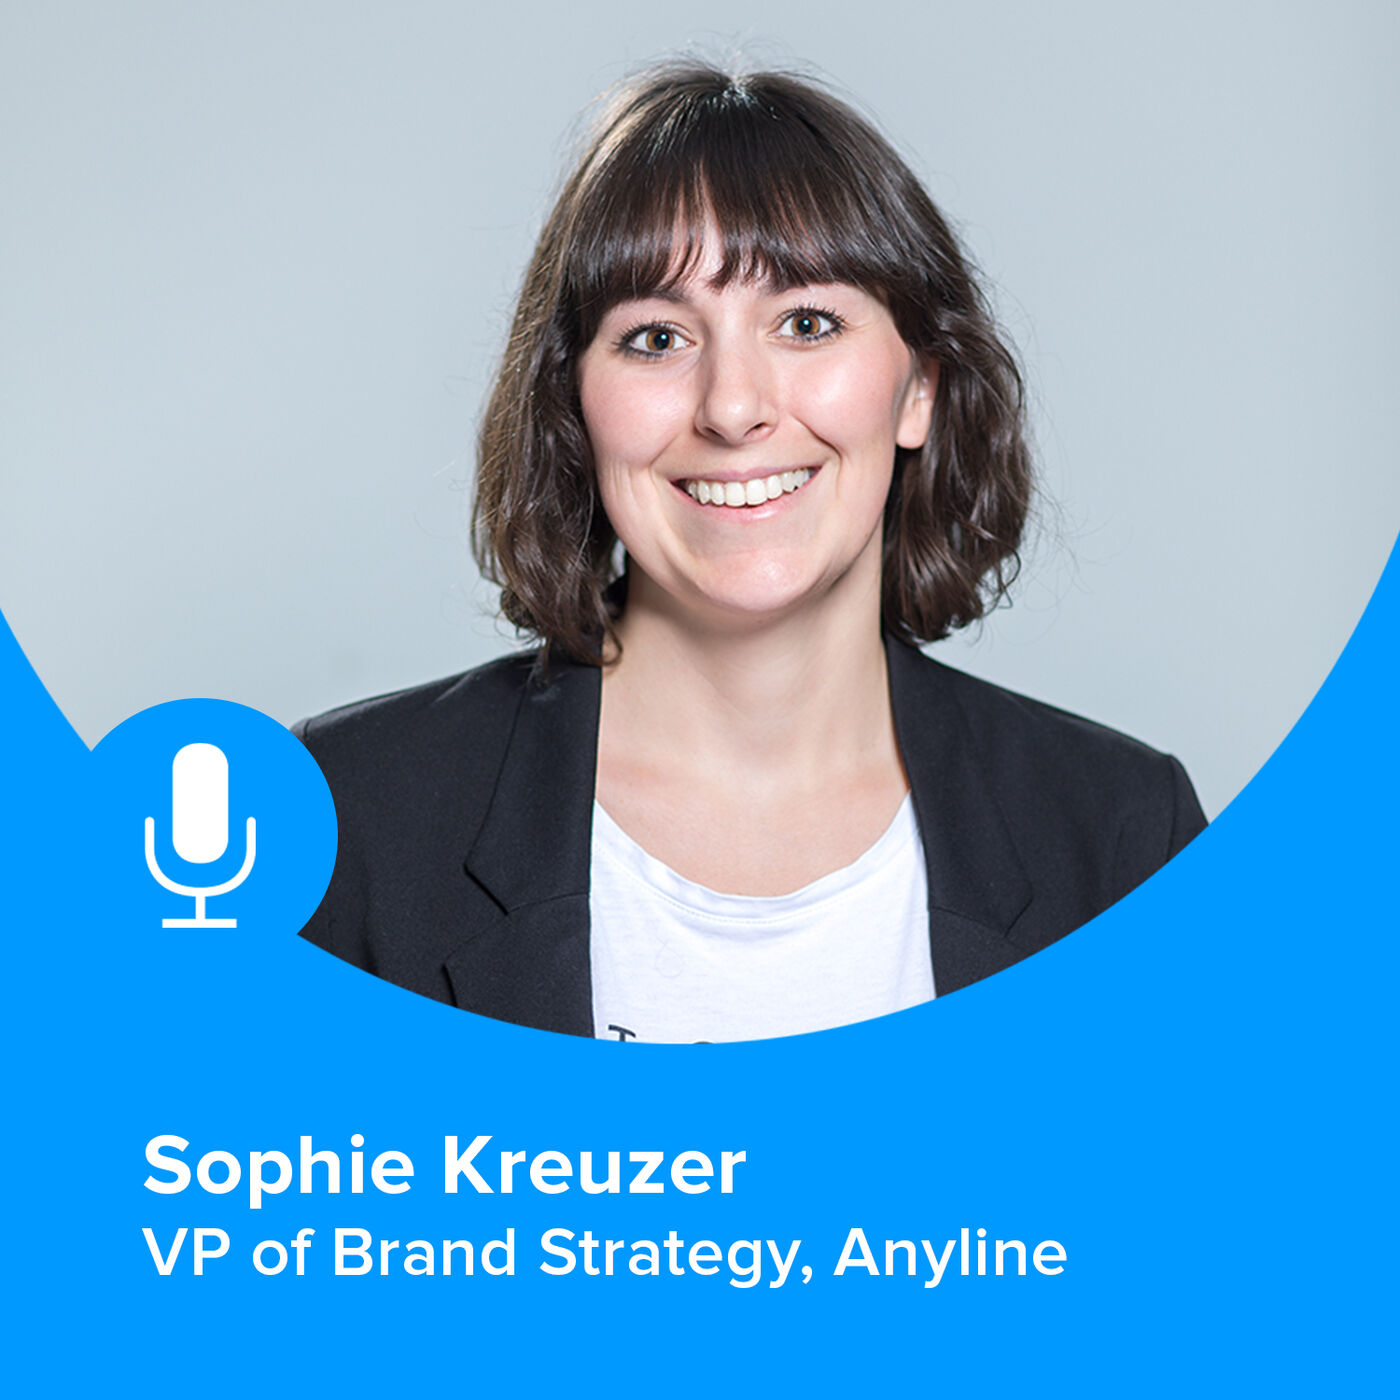 The Role of Storytelling in B2B Business // An Anyline, Anytime Interview